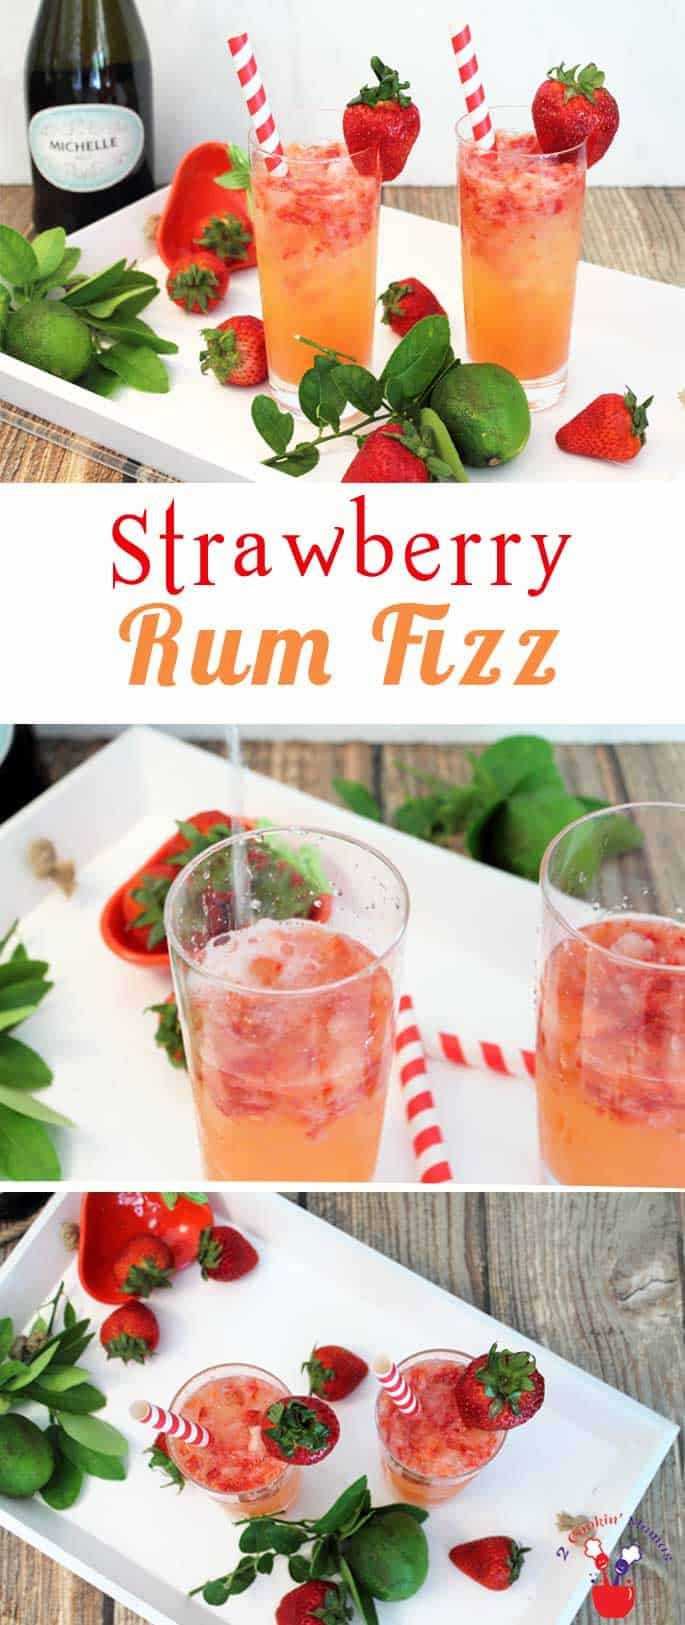 Strawberry Rum Fizz | 2 Cookin Mamas Strawberry Rum Fizz is the perfect cocktail for brunches & summer parties. Strawberries, lime & rum are topped with champagne for a cool, refreshing drink.